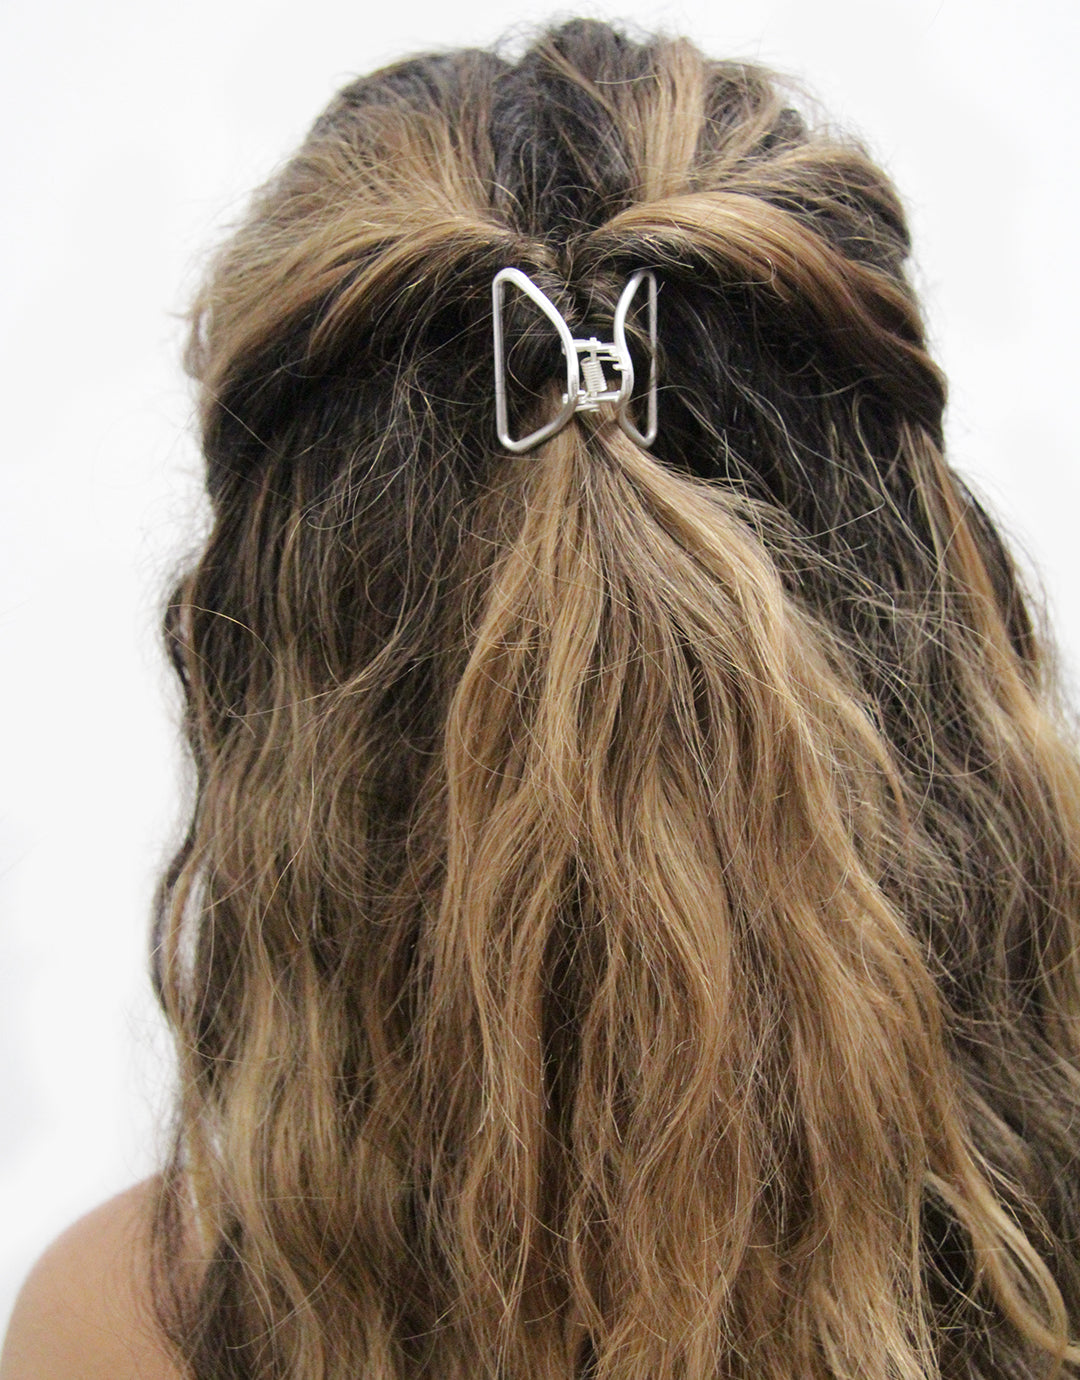 BANDED Hair Accessories - Sail Away (SM) - Matte Metal Claw Clips